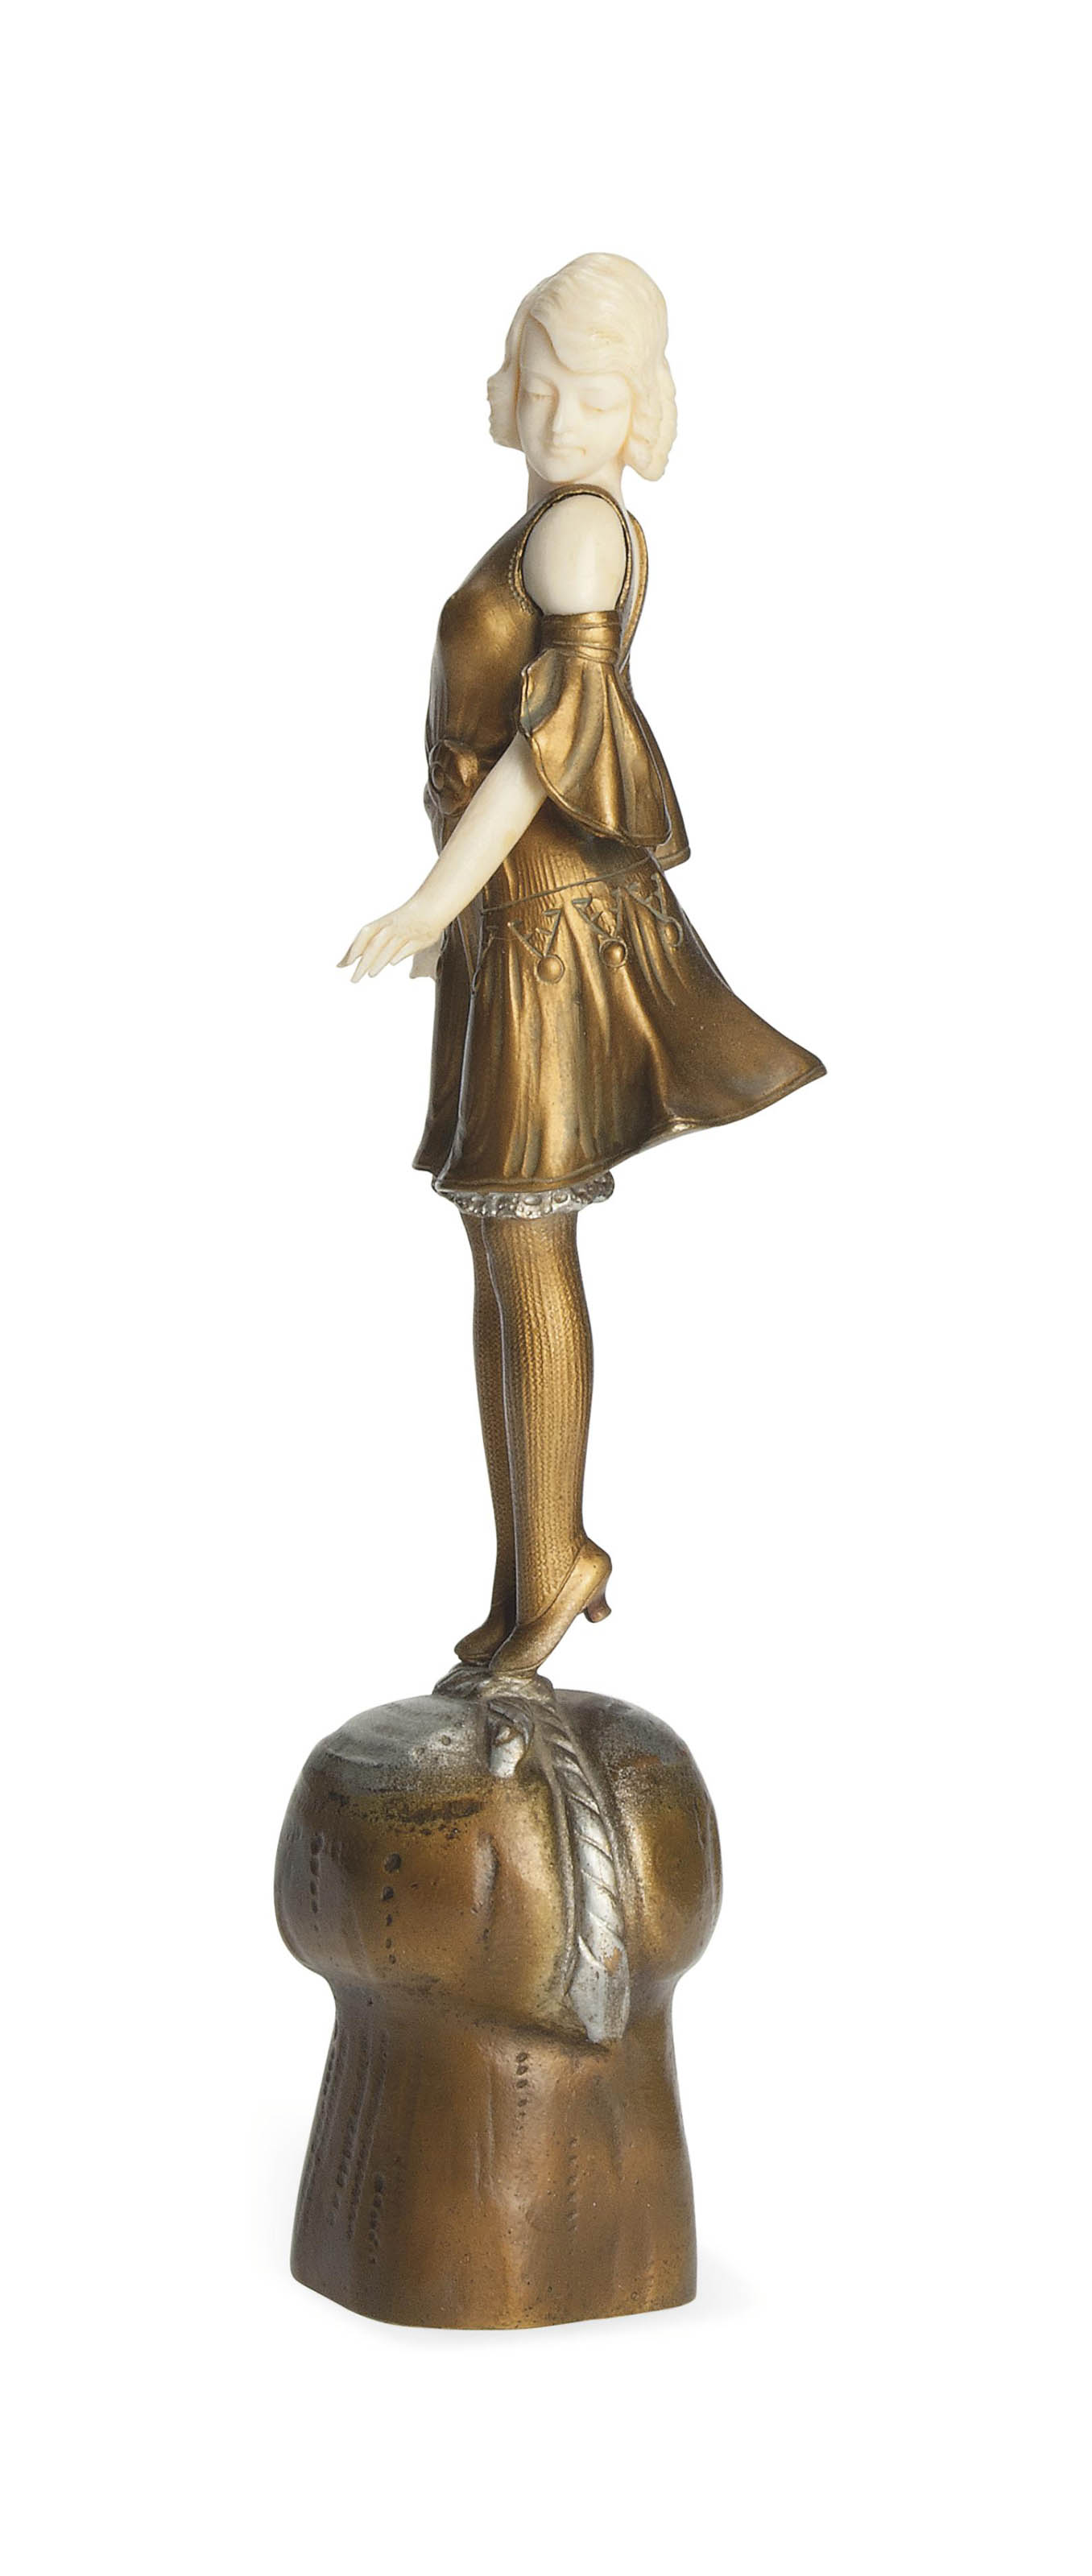 'CHAMPAGNE GIRL' A PROFESSOR OTTO POERTZEL COLD-PAINTED BRONZE AND IVORY FIGURE